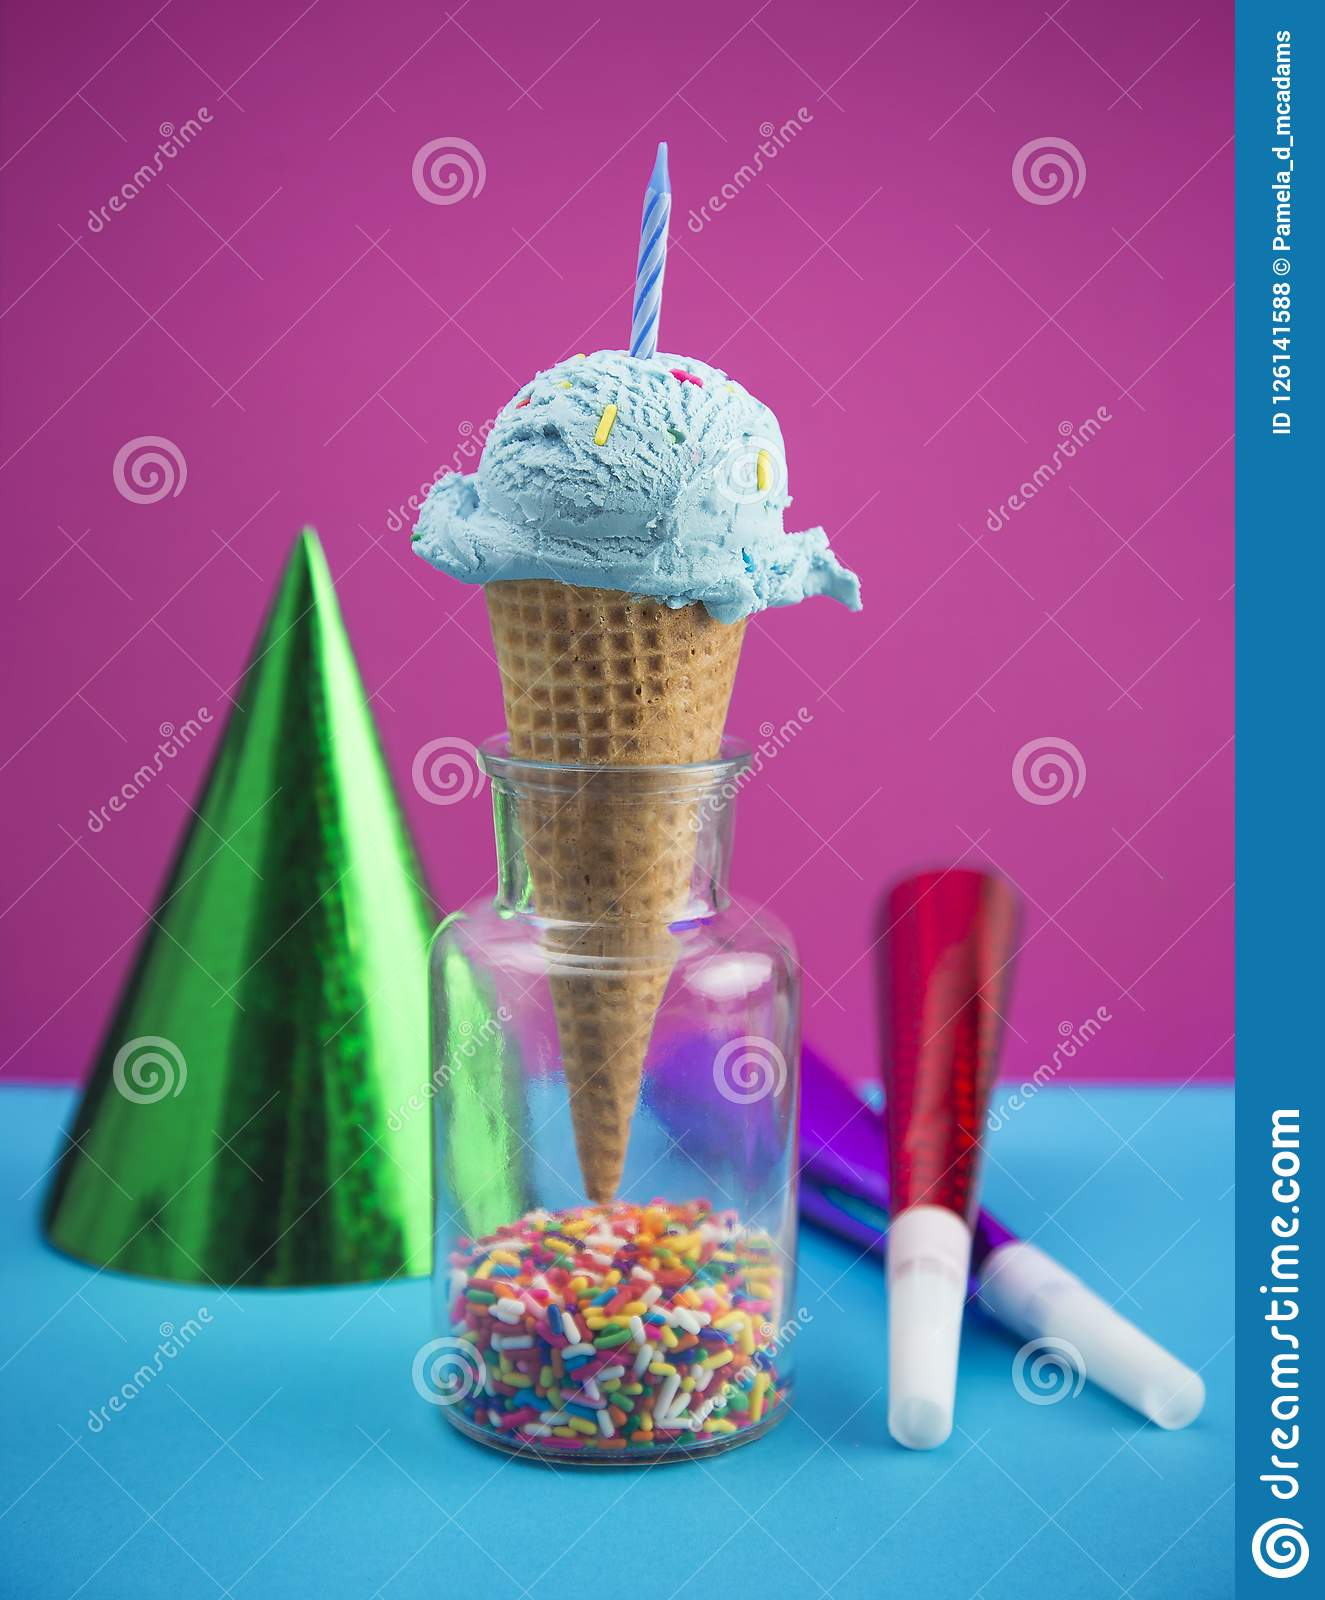 Birthday Cake Blue Ice Cream In A Waffle Cone With Hat And Horns